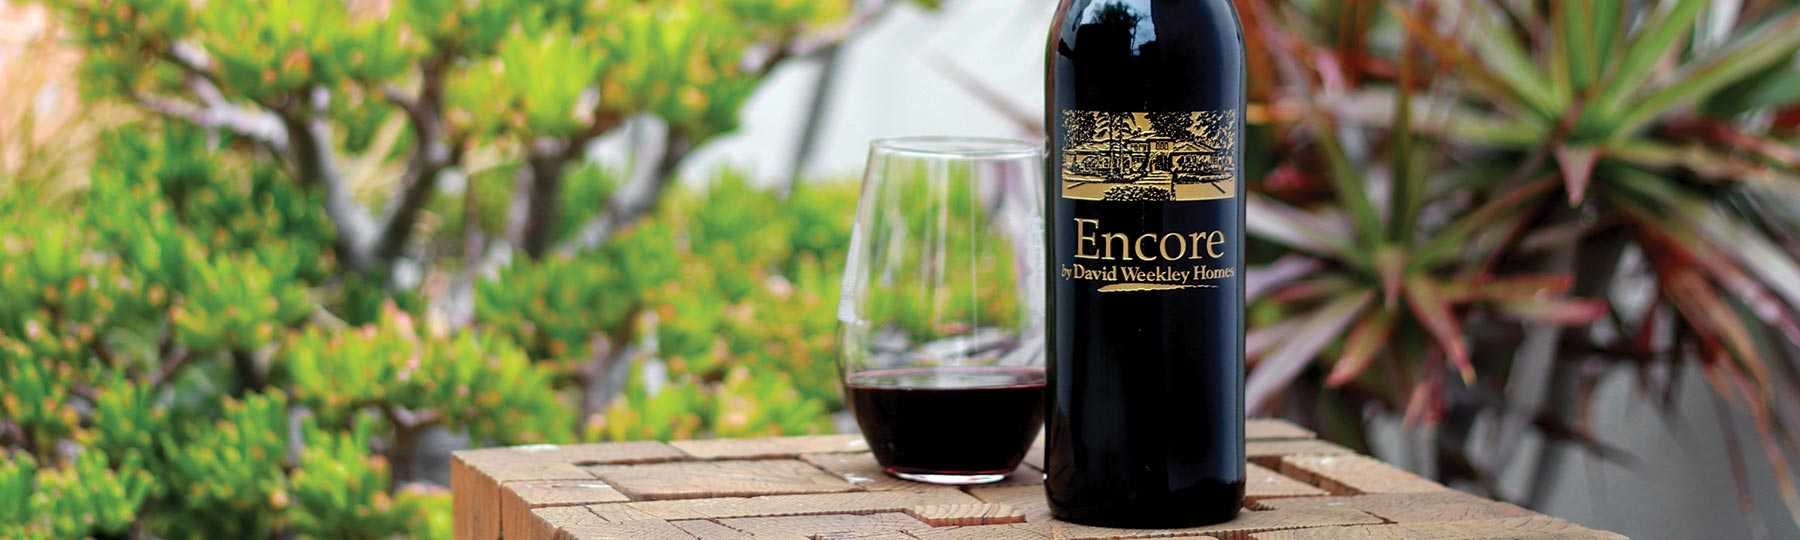 Custom engraved real estate marketing wine gift by Etching Expressions